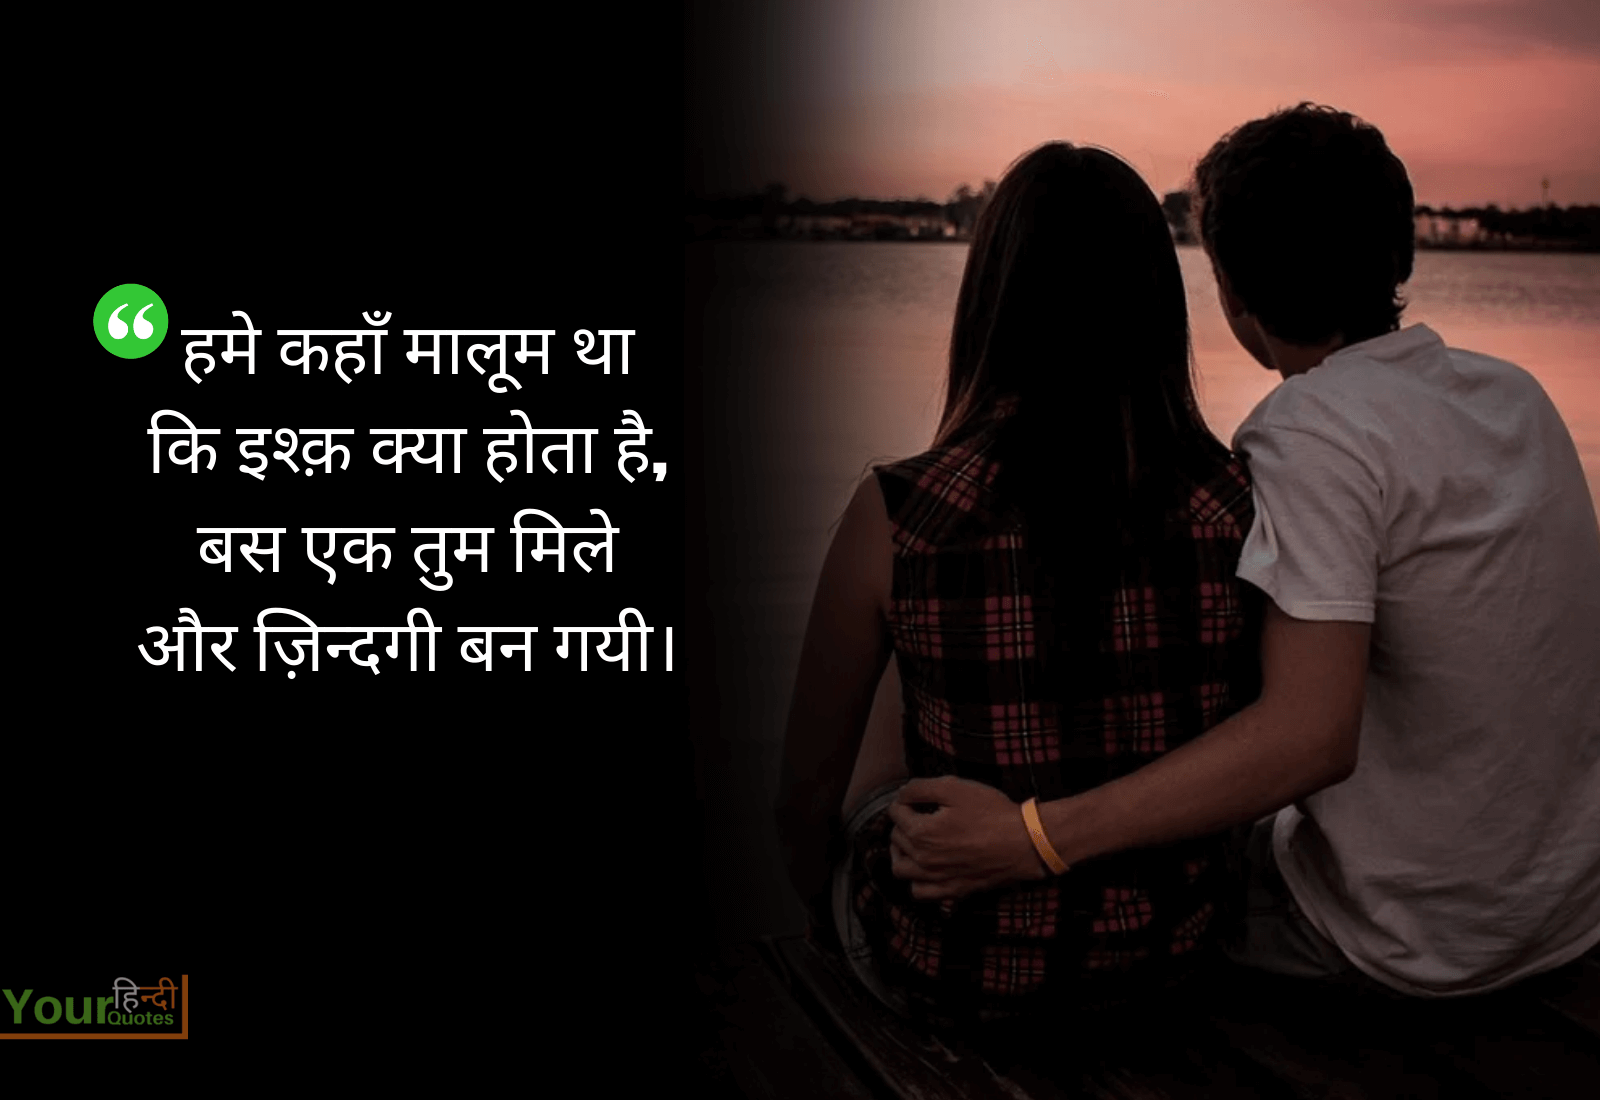 Romantic Shayari Image in Hindi